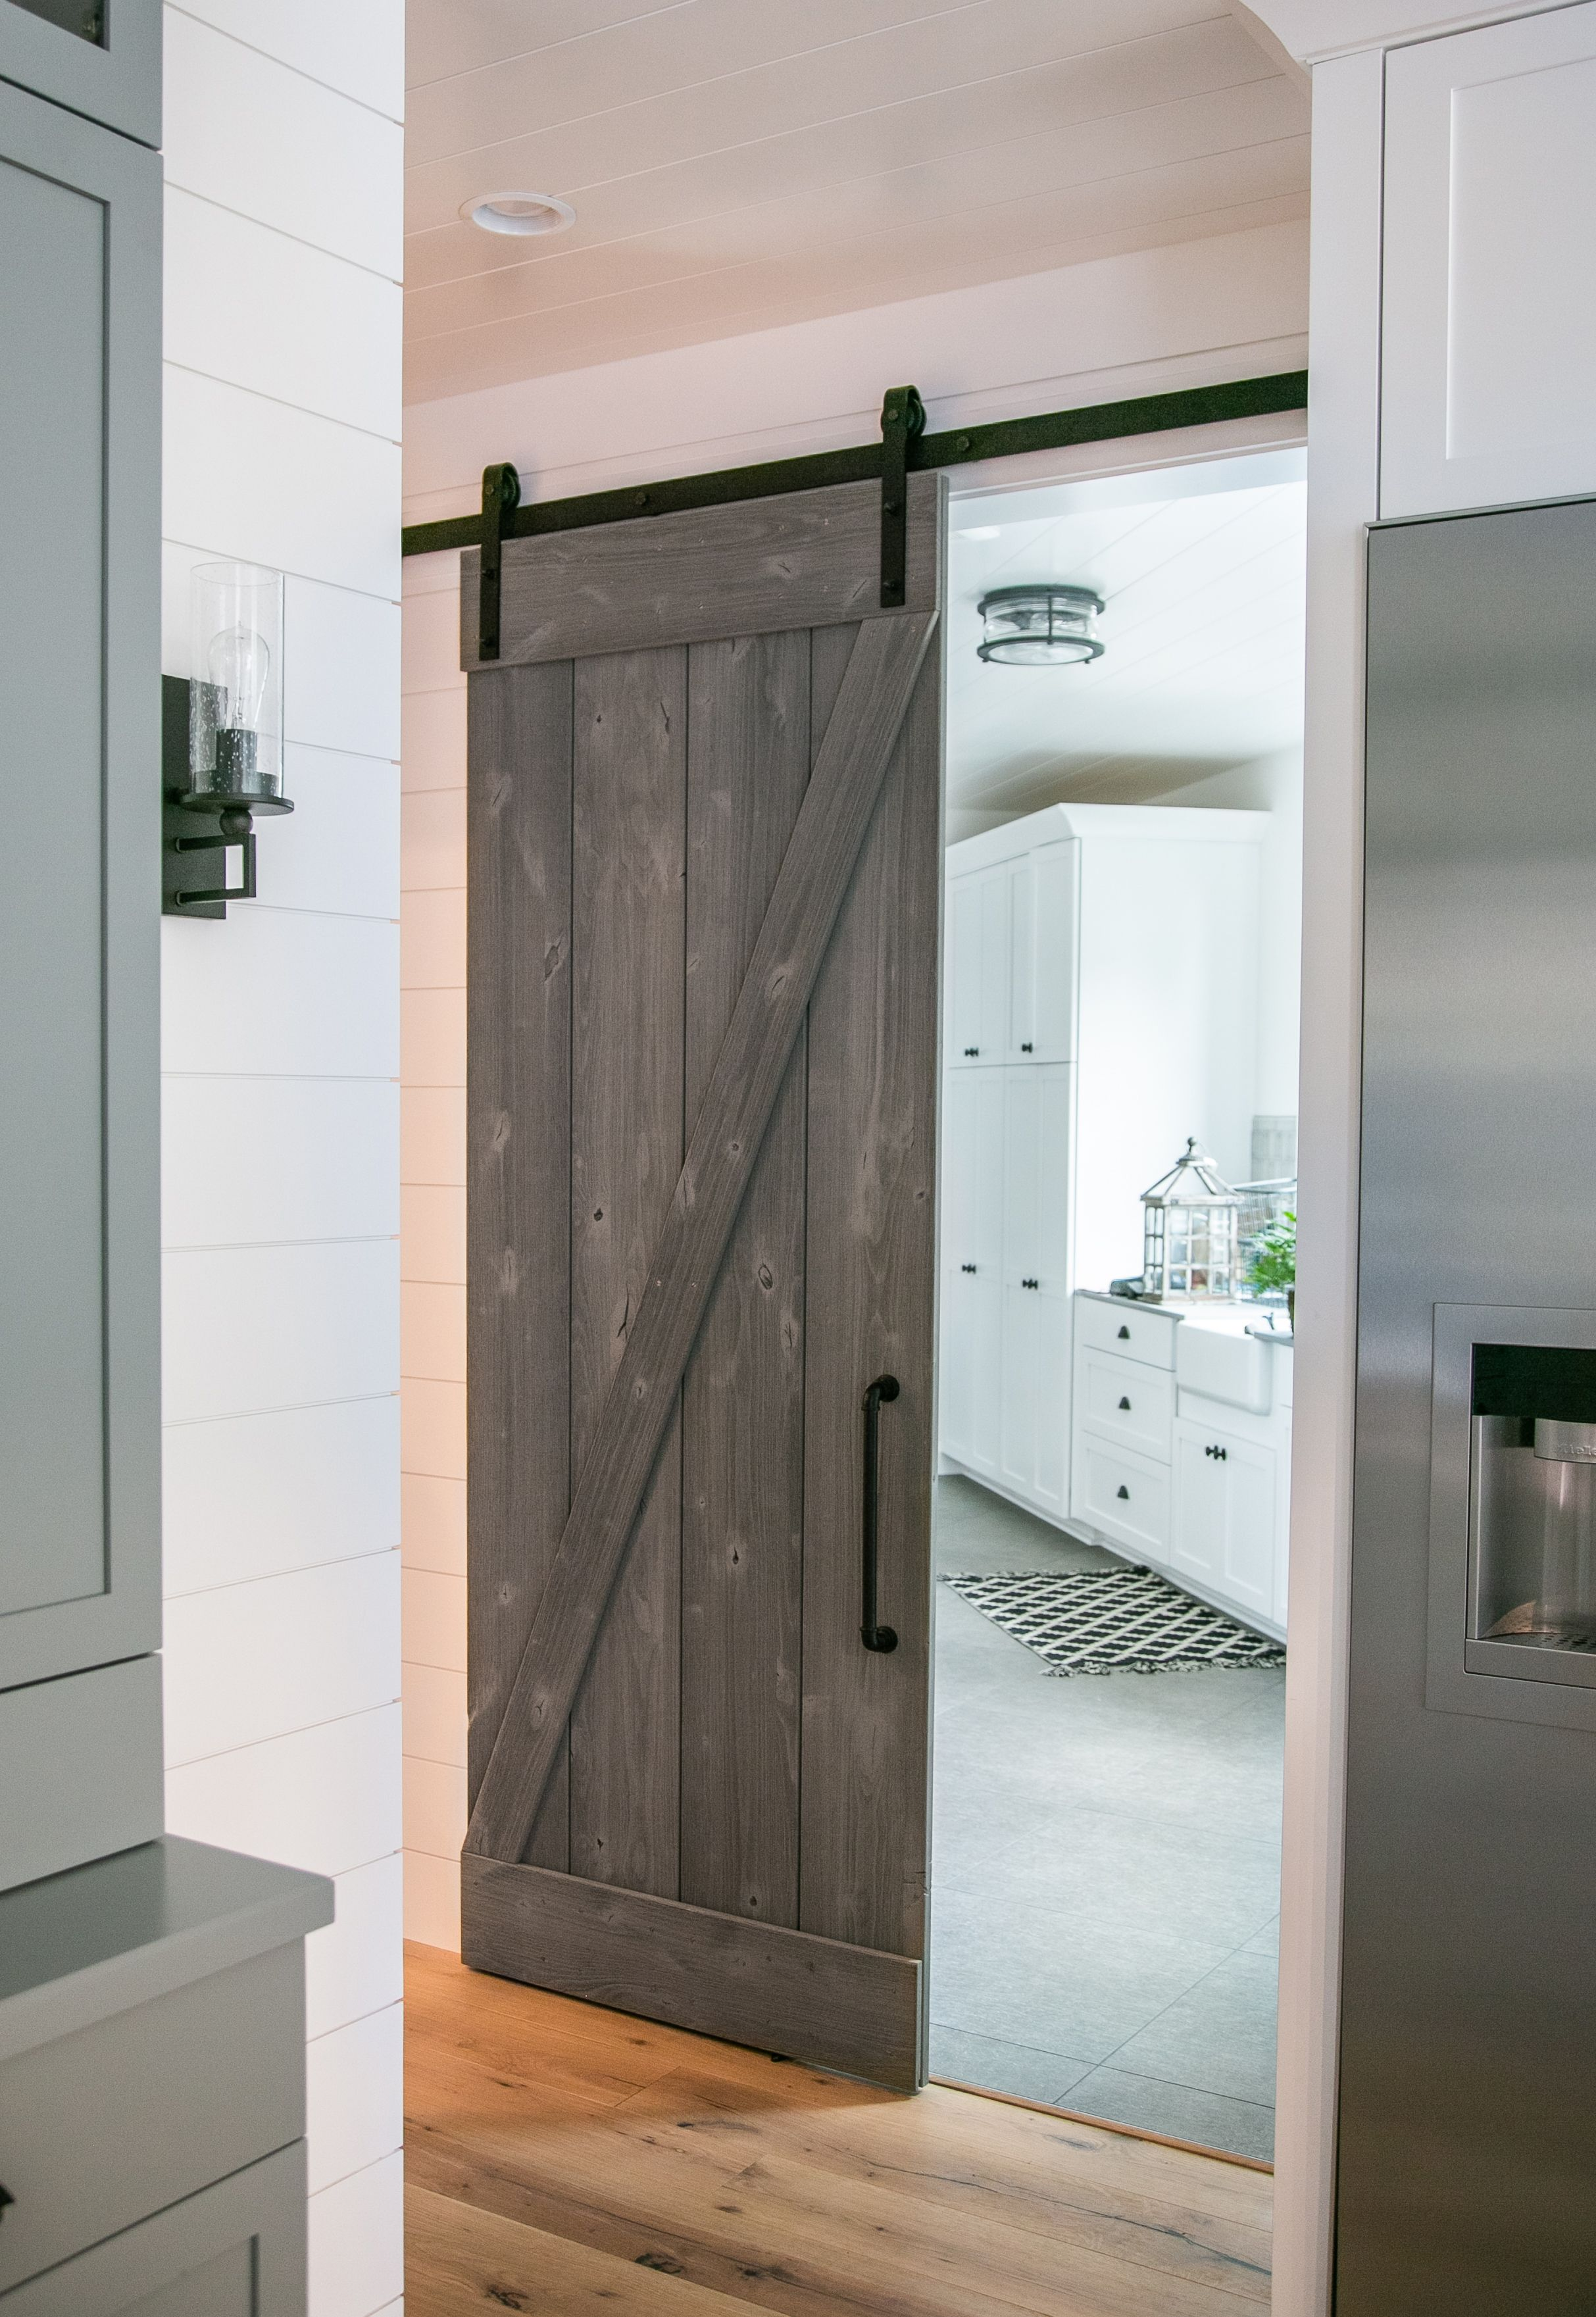 Our Z Brace Barn Door Fits In Perfectly In This Contemporary Home Add A Nautical Touch To Your Door With Our Dr Barn Doors Sliding Diy Barn Door Kit Barn Door